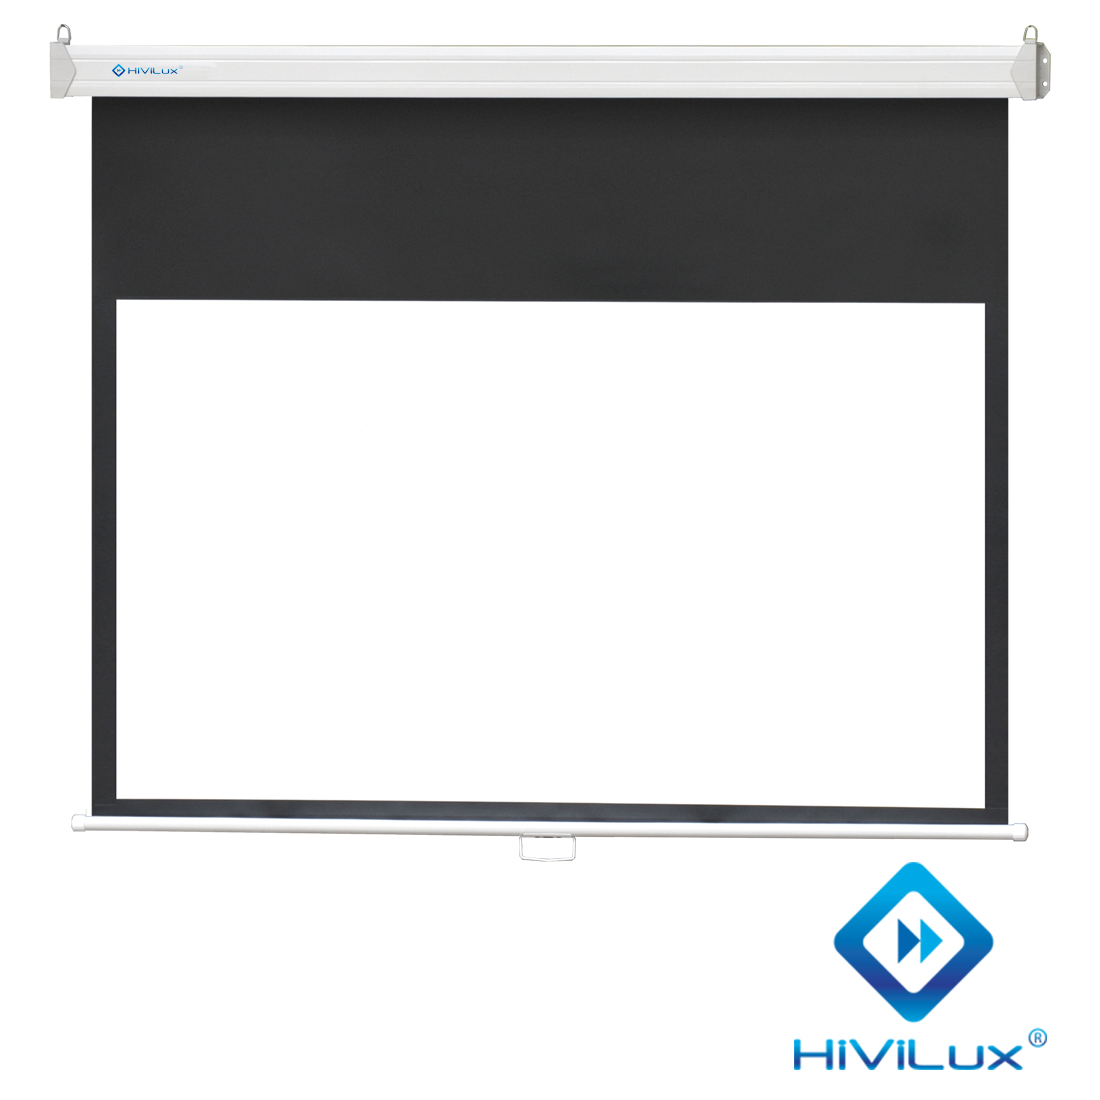 hivilux 16 9 rollo leinwand geh use wei vs serie hivilux gmbh. Black Bedroom Furniture Sets. Home Design Ideas